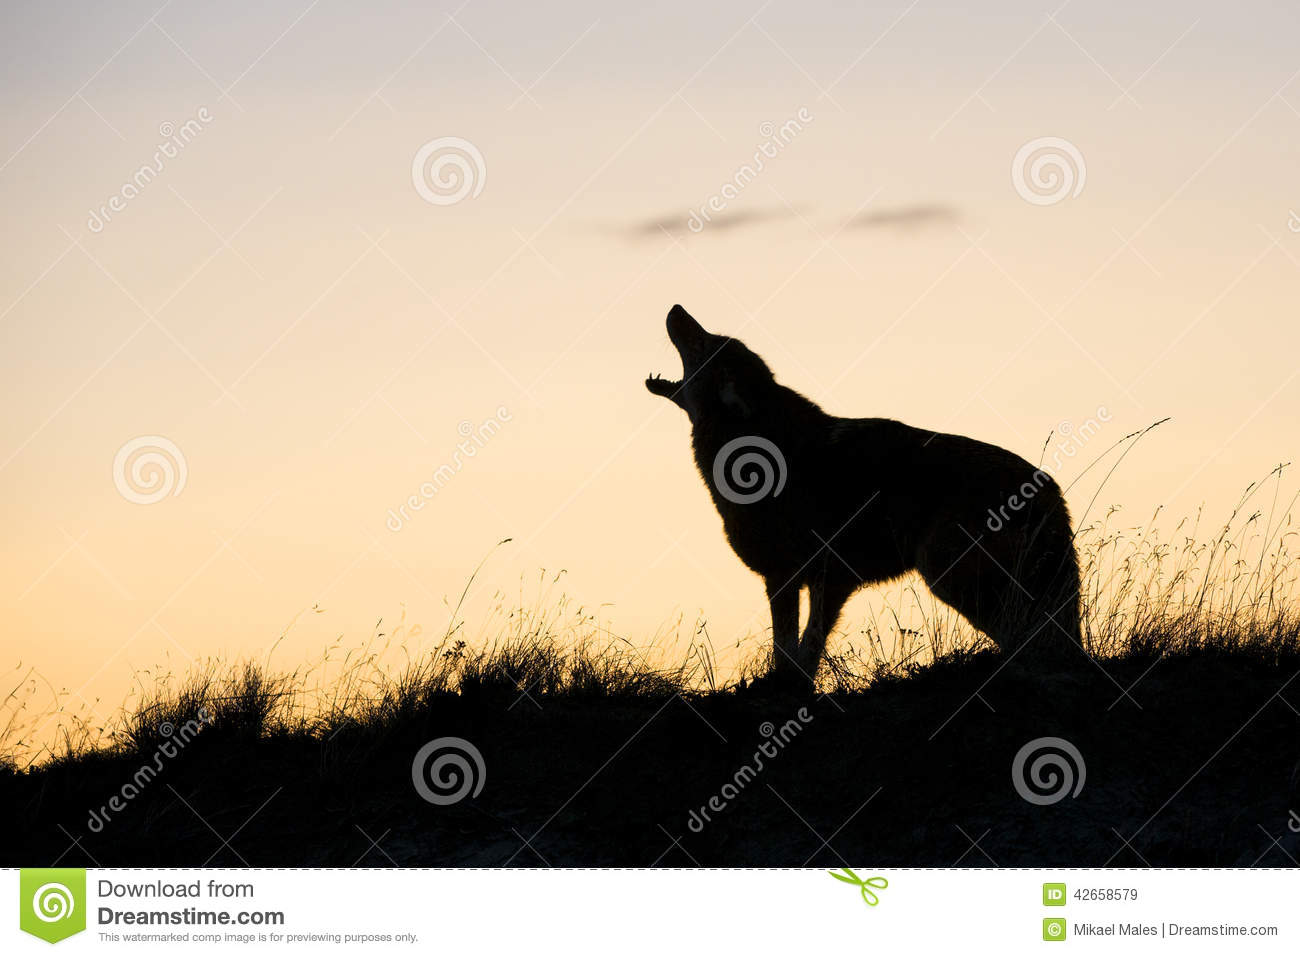 Silhouette of coyote howling at sunrise